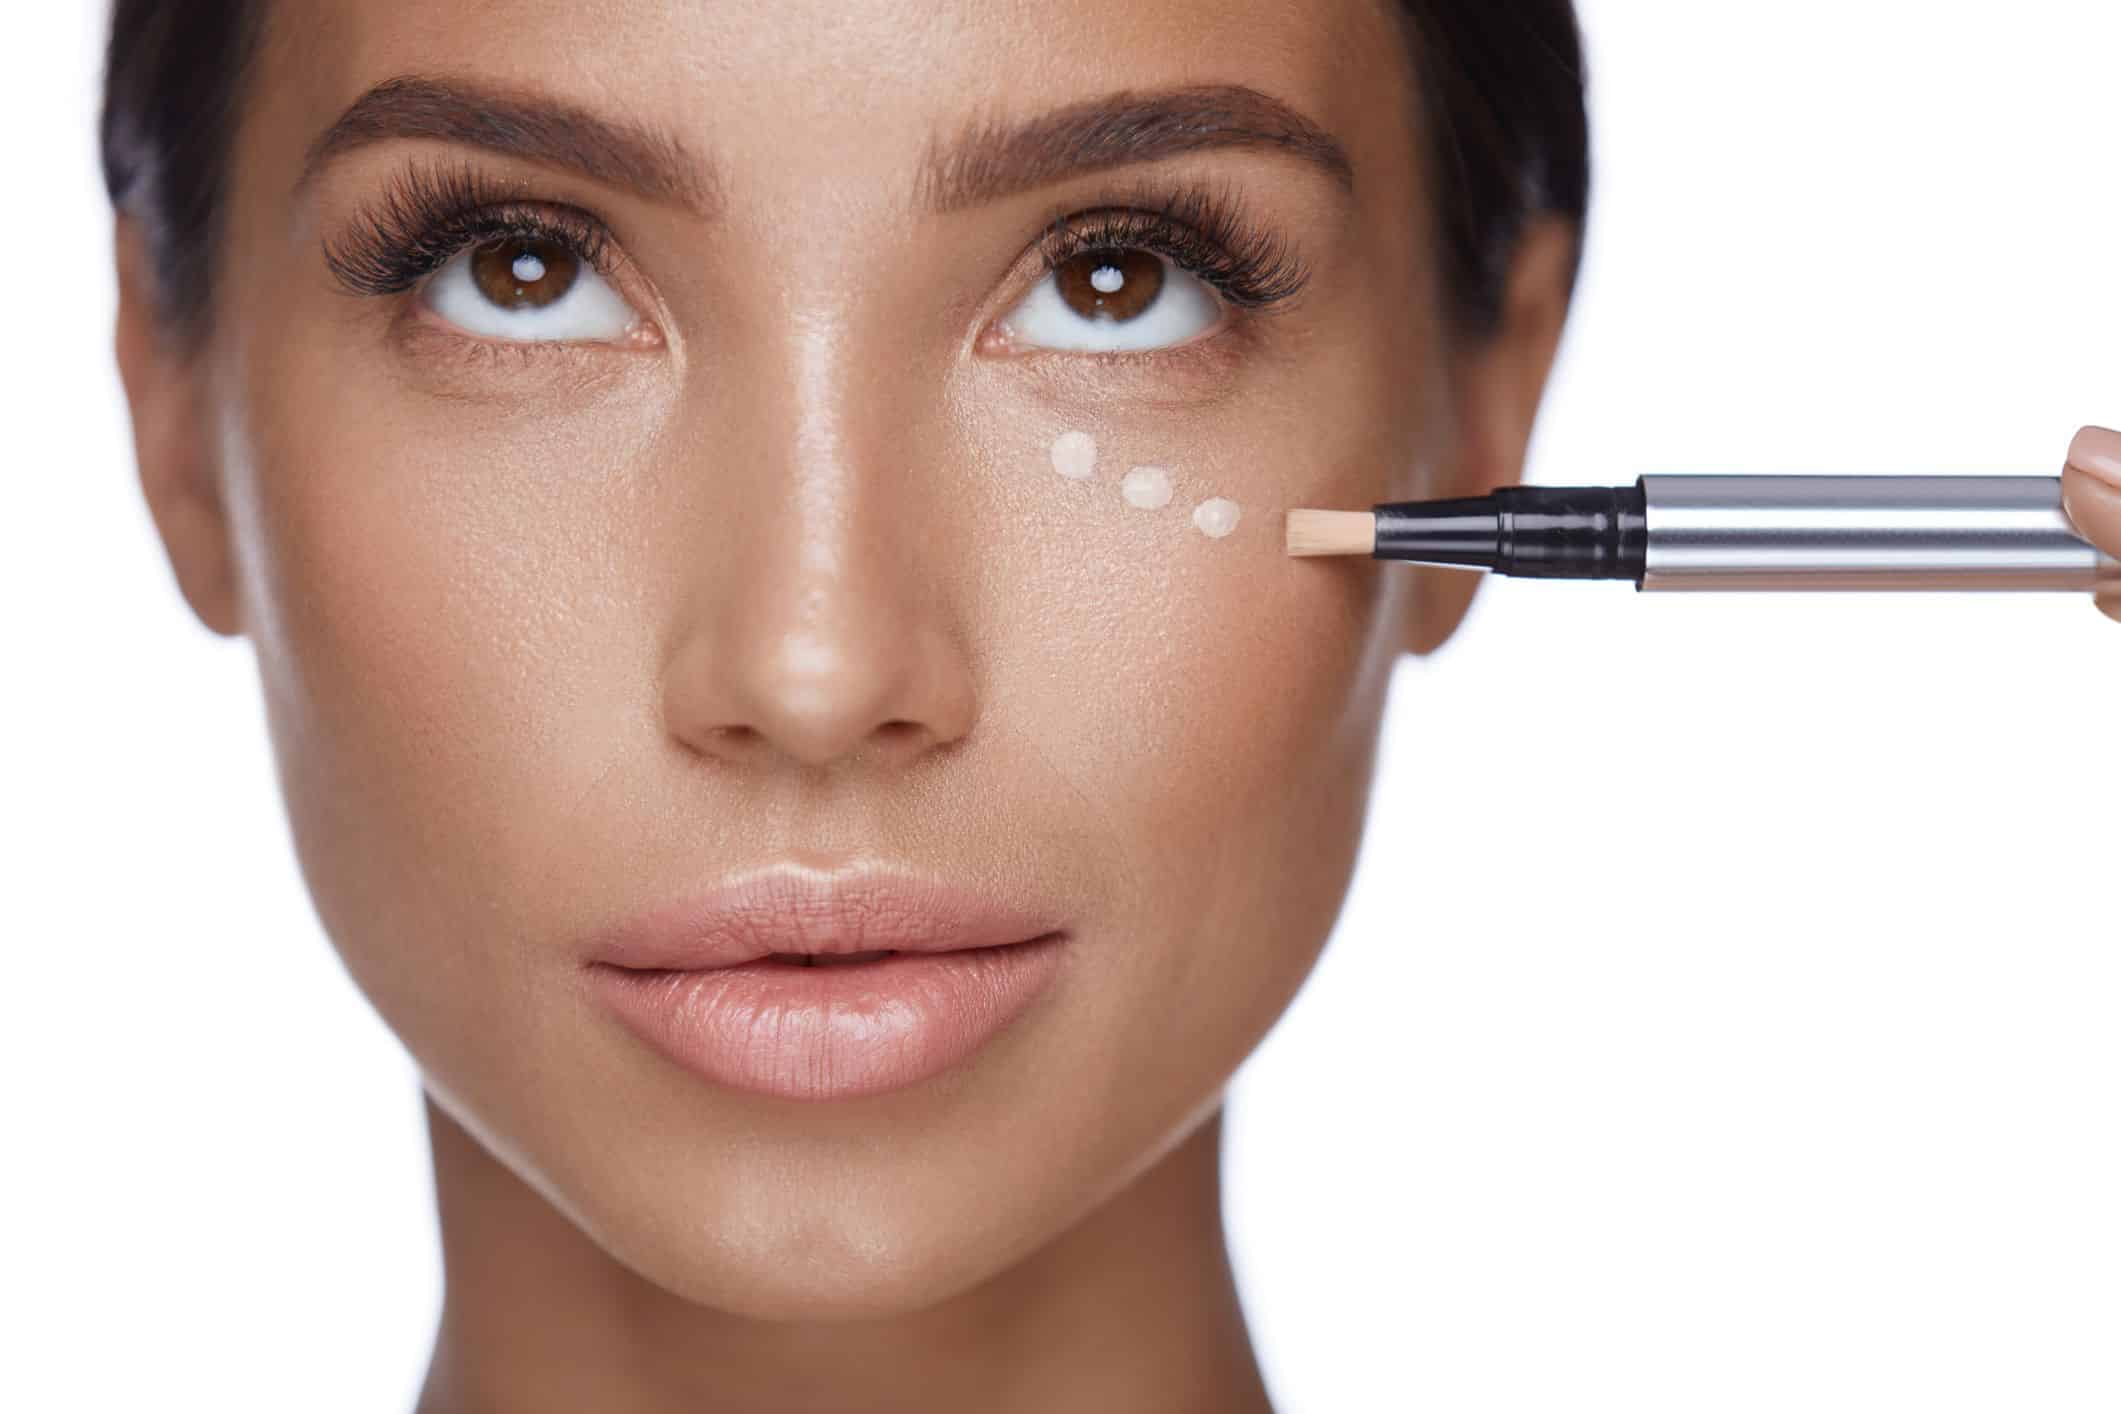 What Are The Benefits Of Applying Concealers?